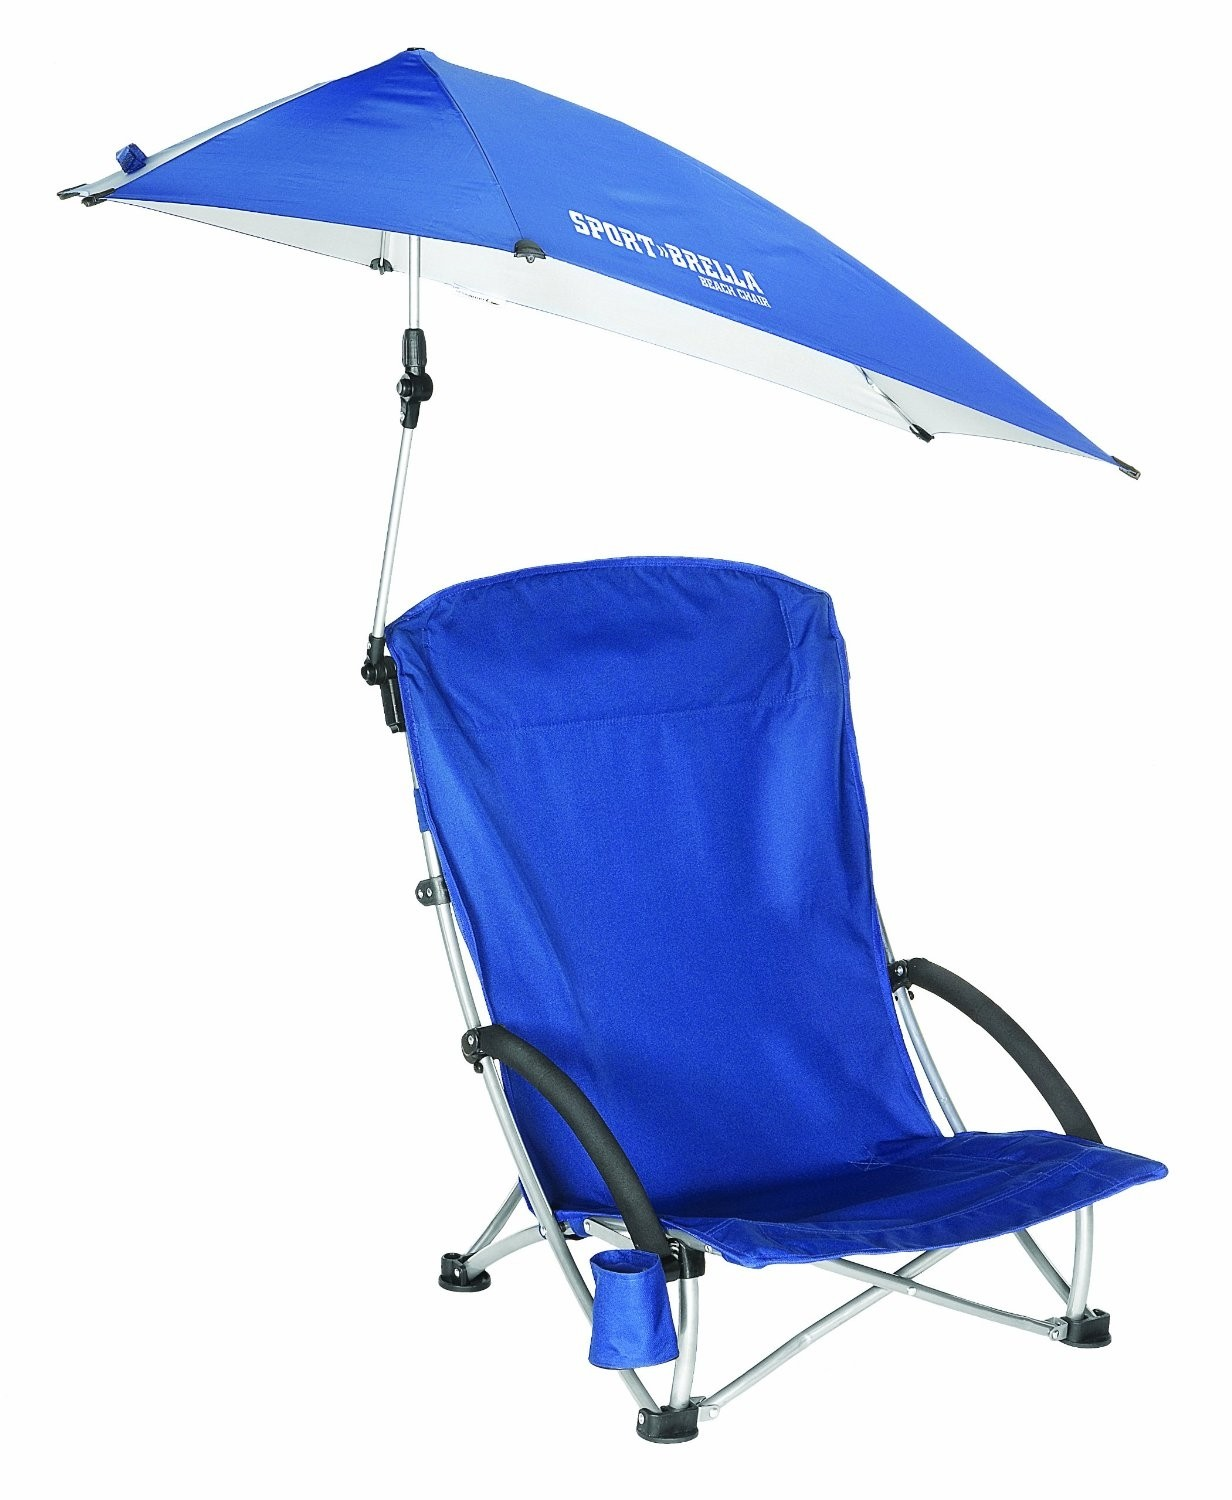 portable beach chair used salon 50 best lightweight folding chairs ideas on foter 1